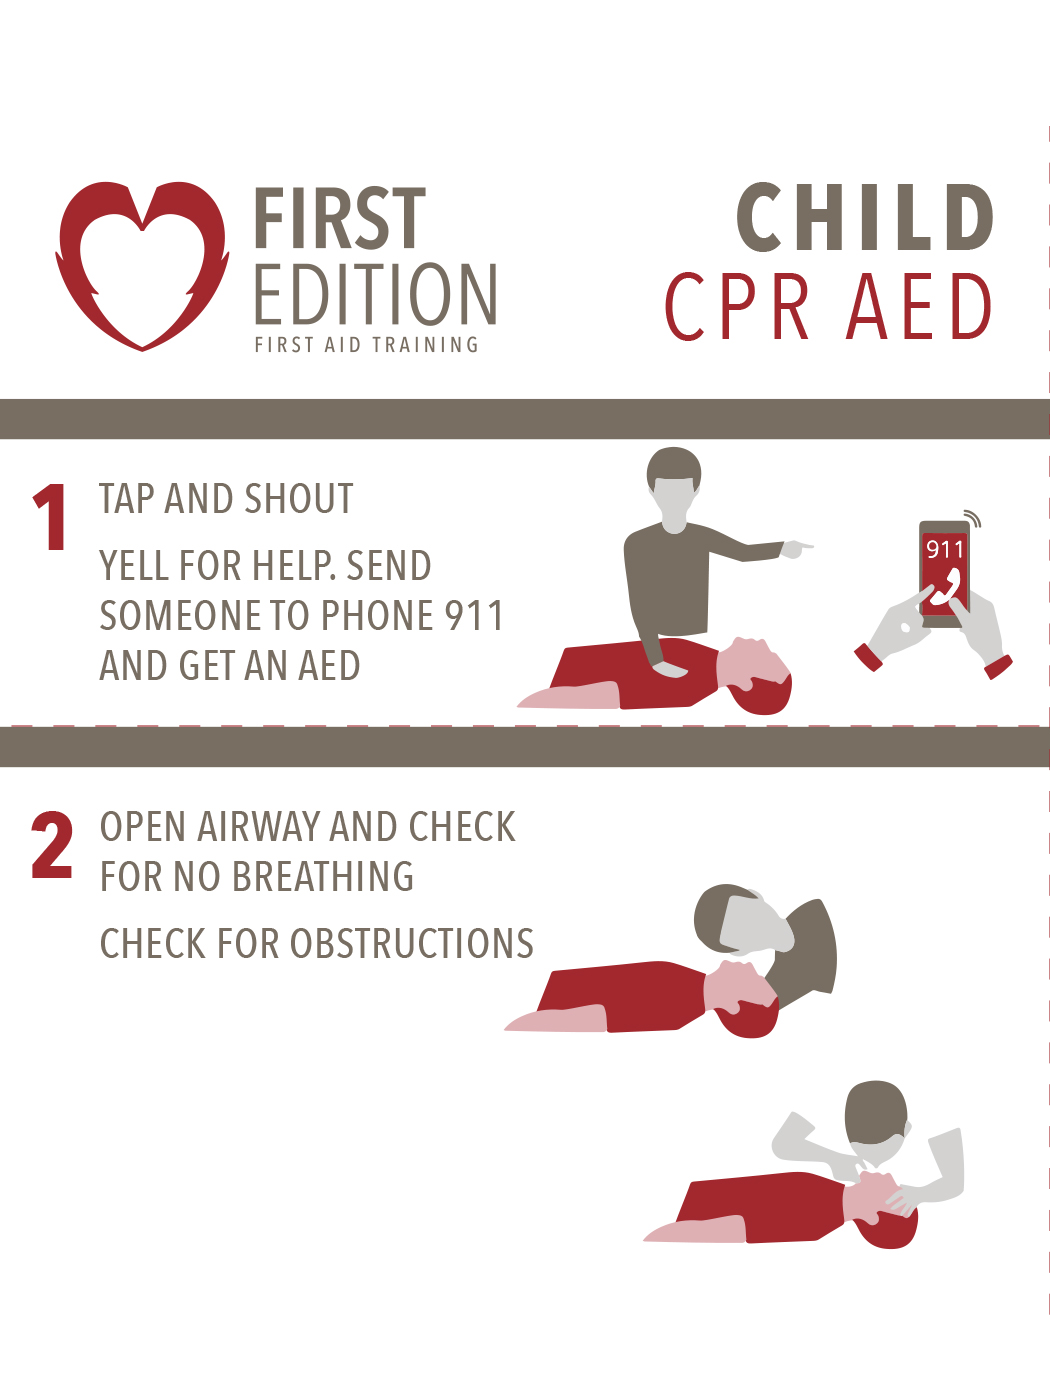 About First Edition First Aid Training Inc